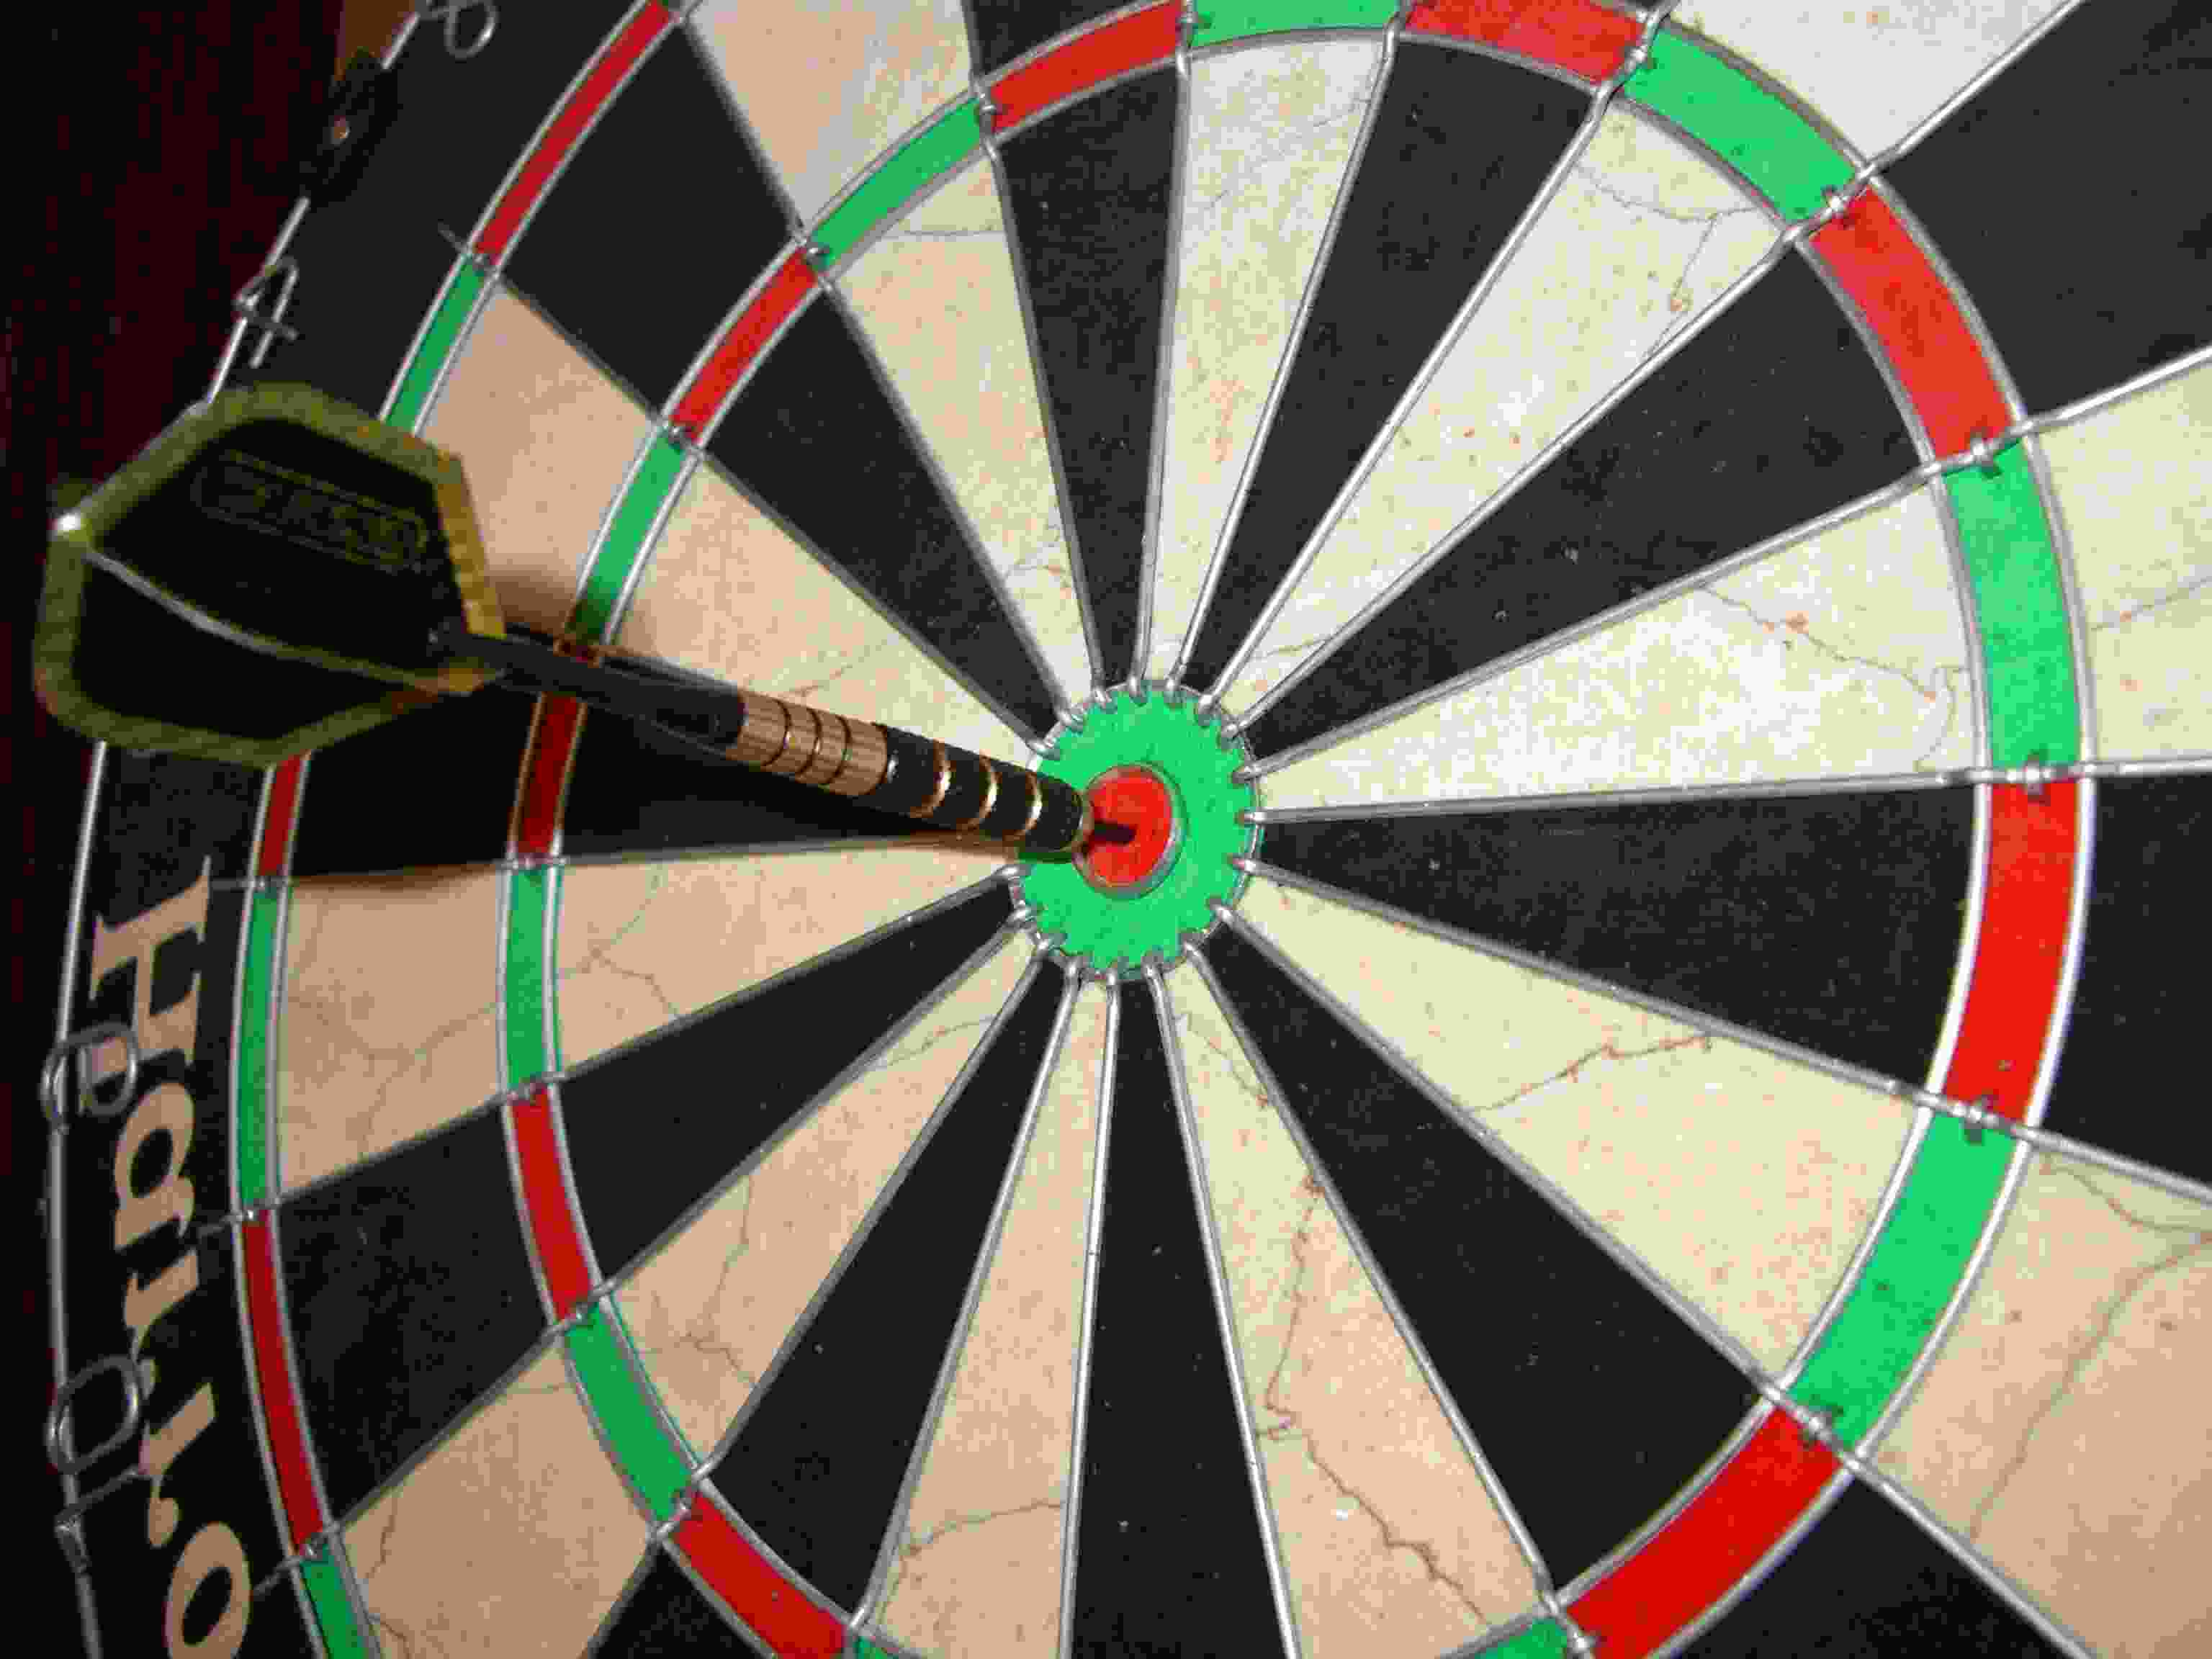 bullseye darts for sale